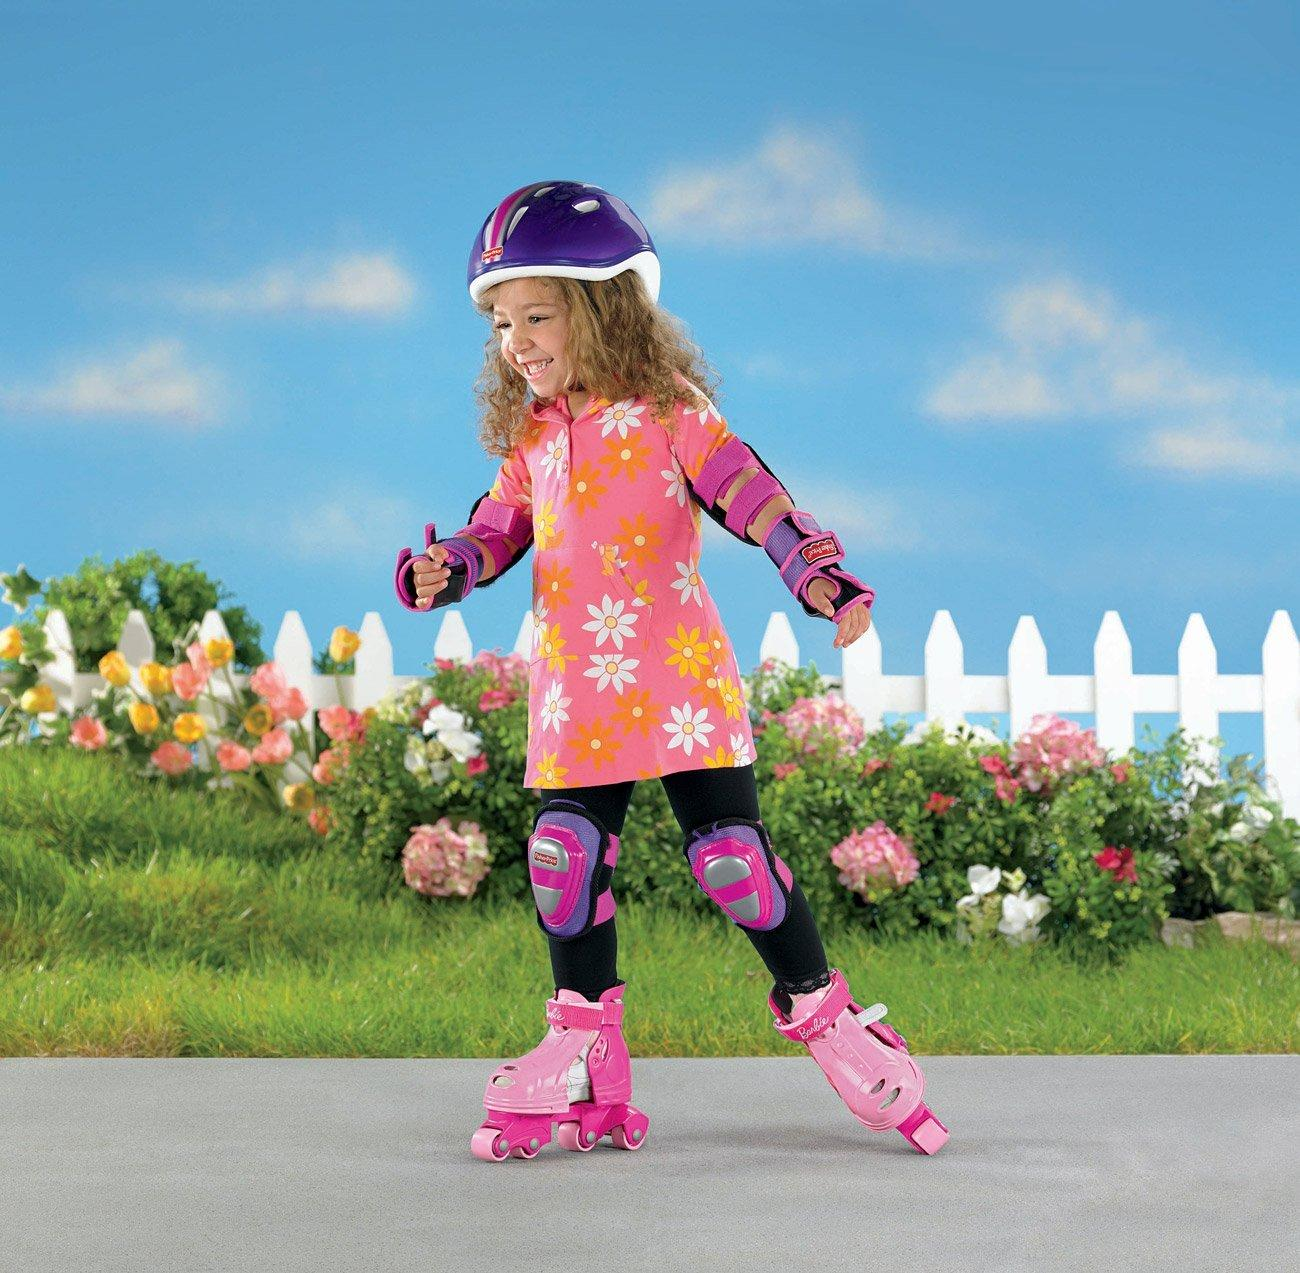 Barbie Grow With Me 1,2,3 InLine Skates